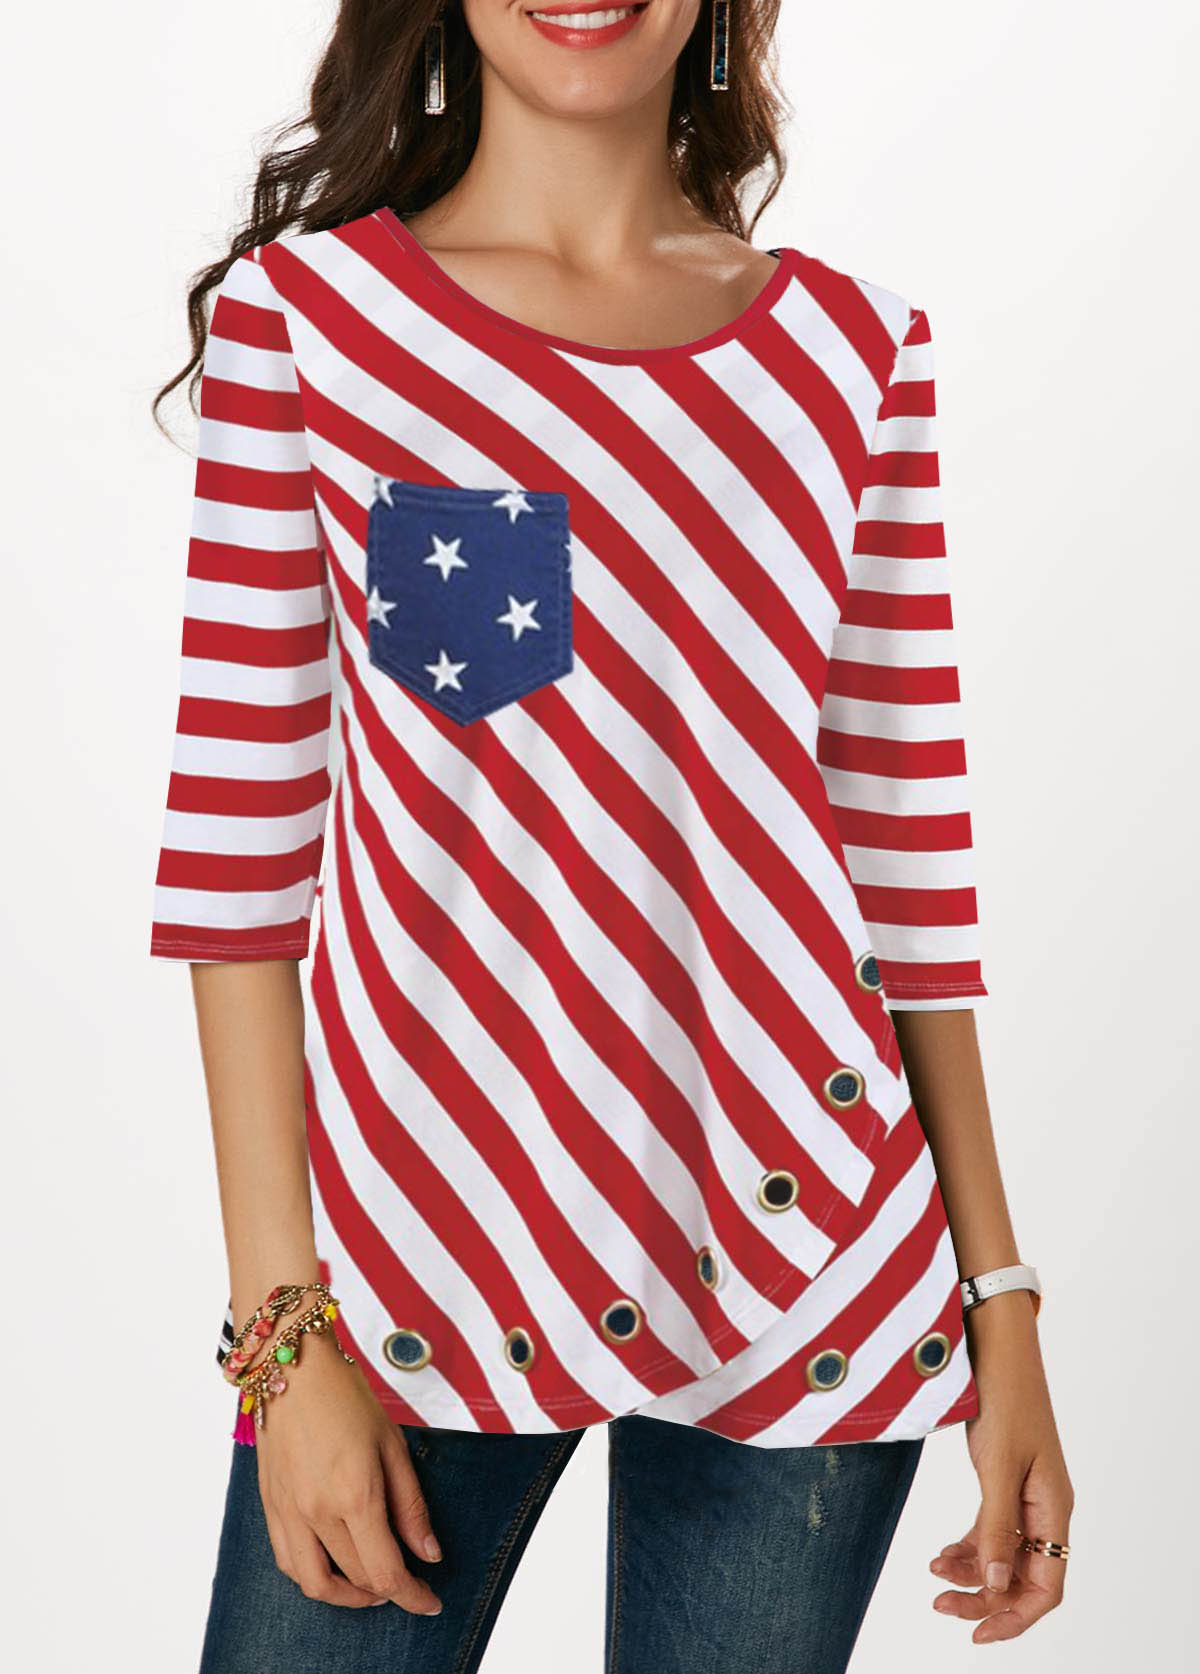 Metal Eyelet Detail Flag Print Red T Shirt